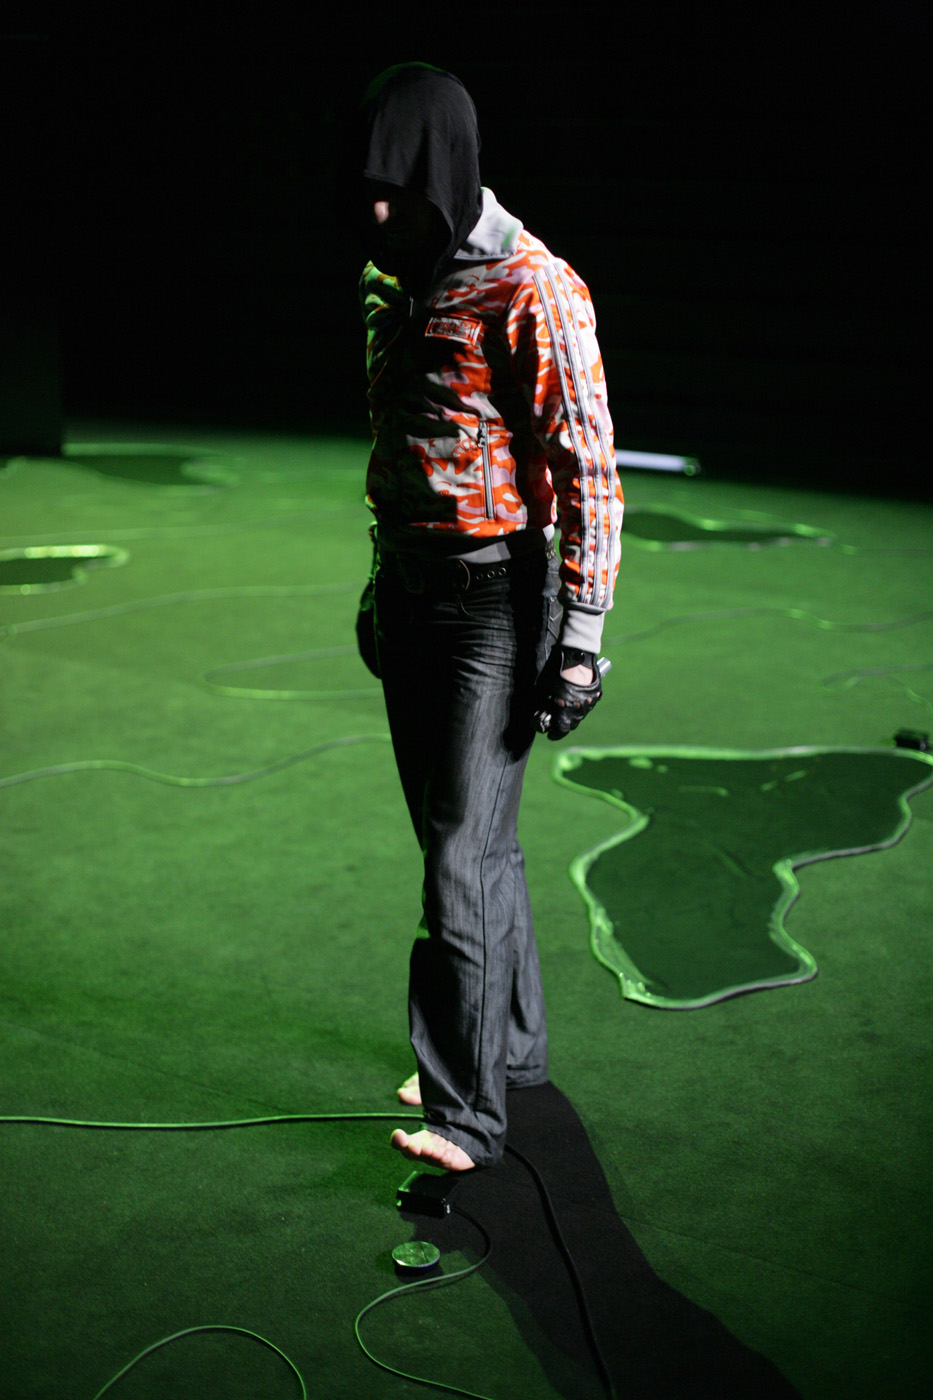 Fig. 2. Loin… (Far…), 2008, Rachid Ouramdane, Performance, © Patrick Imbert (Used with permission).